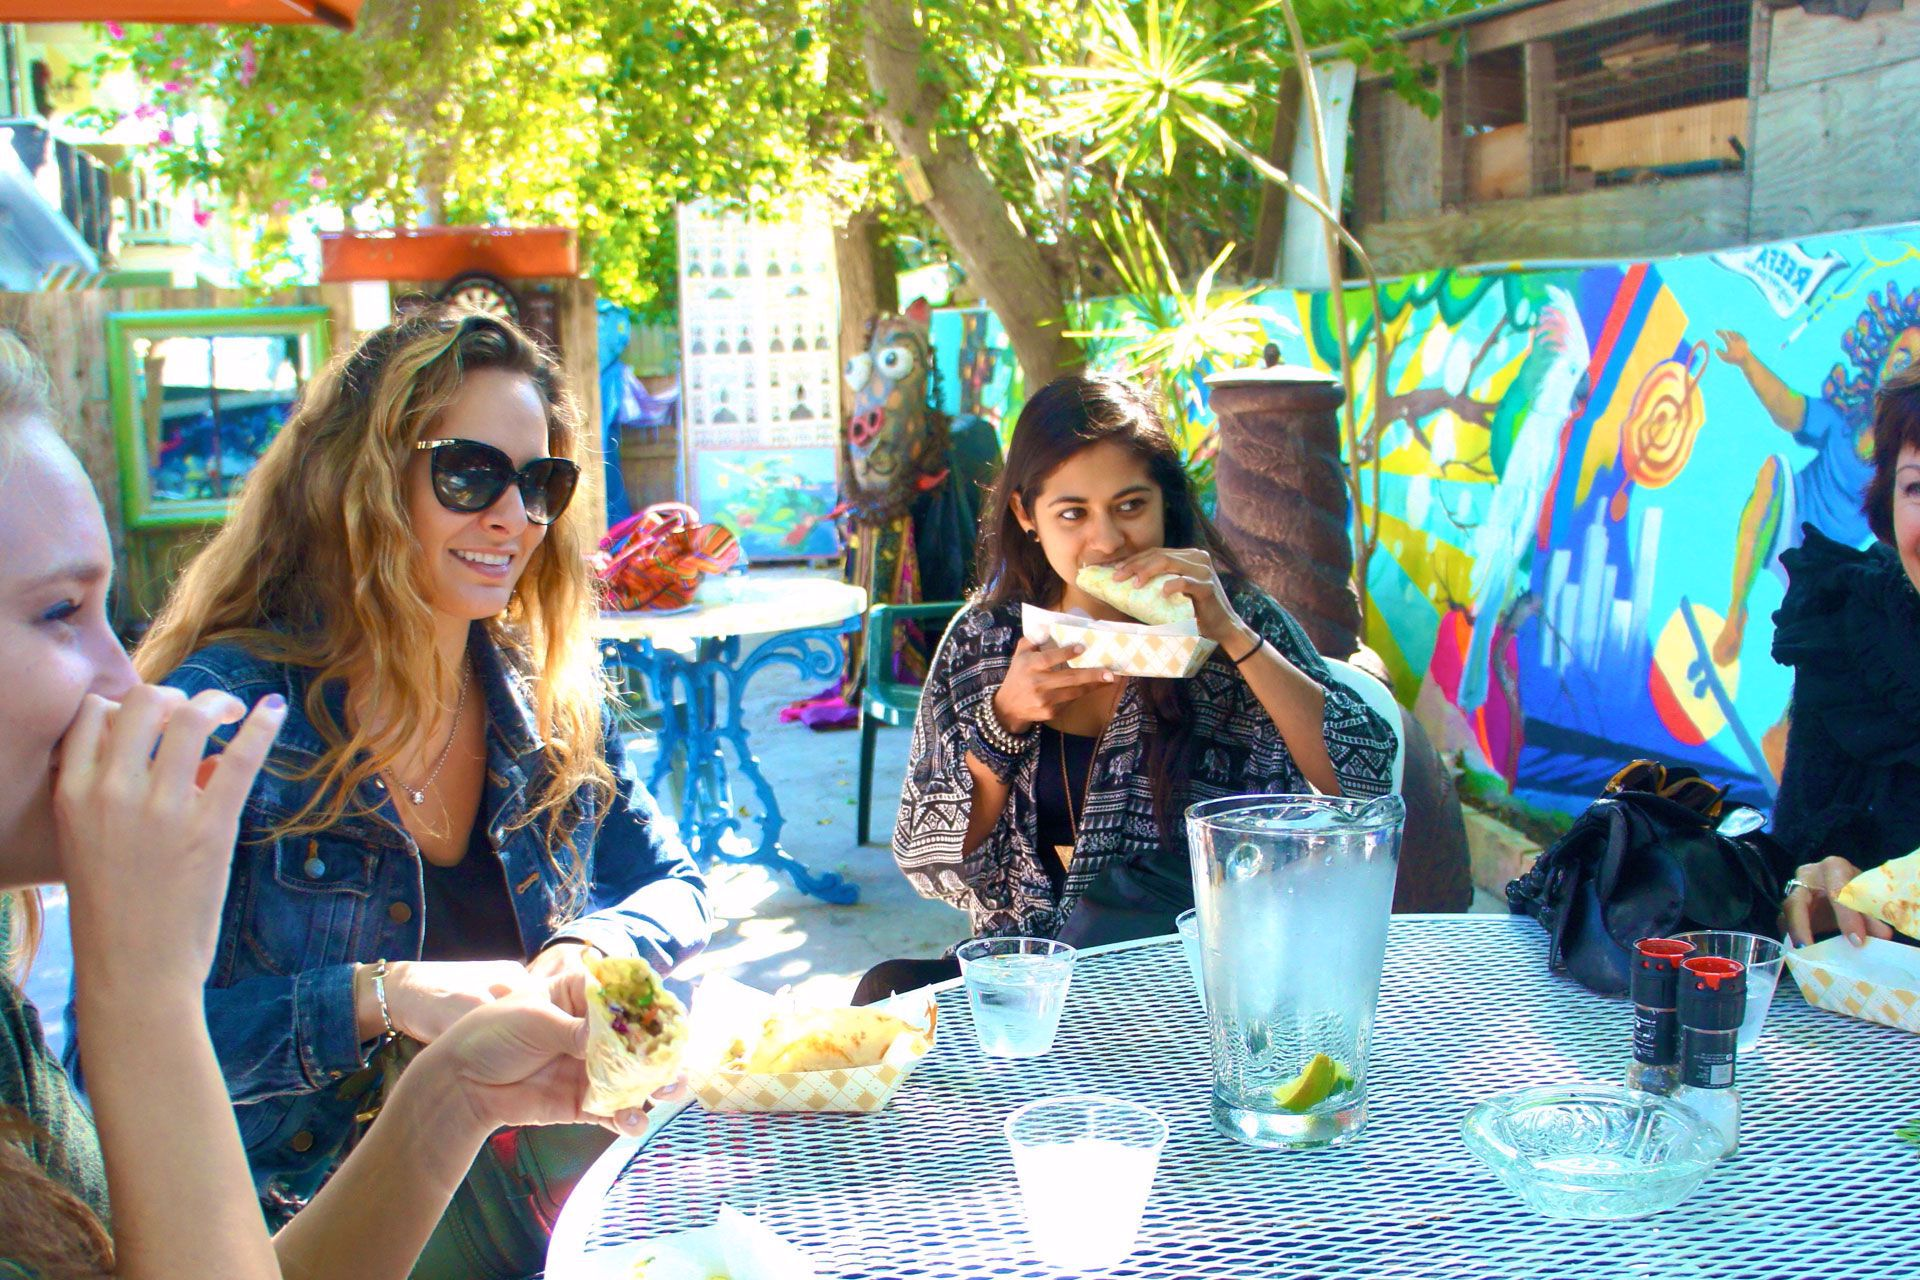 Meet your fellow foodies in old Key West